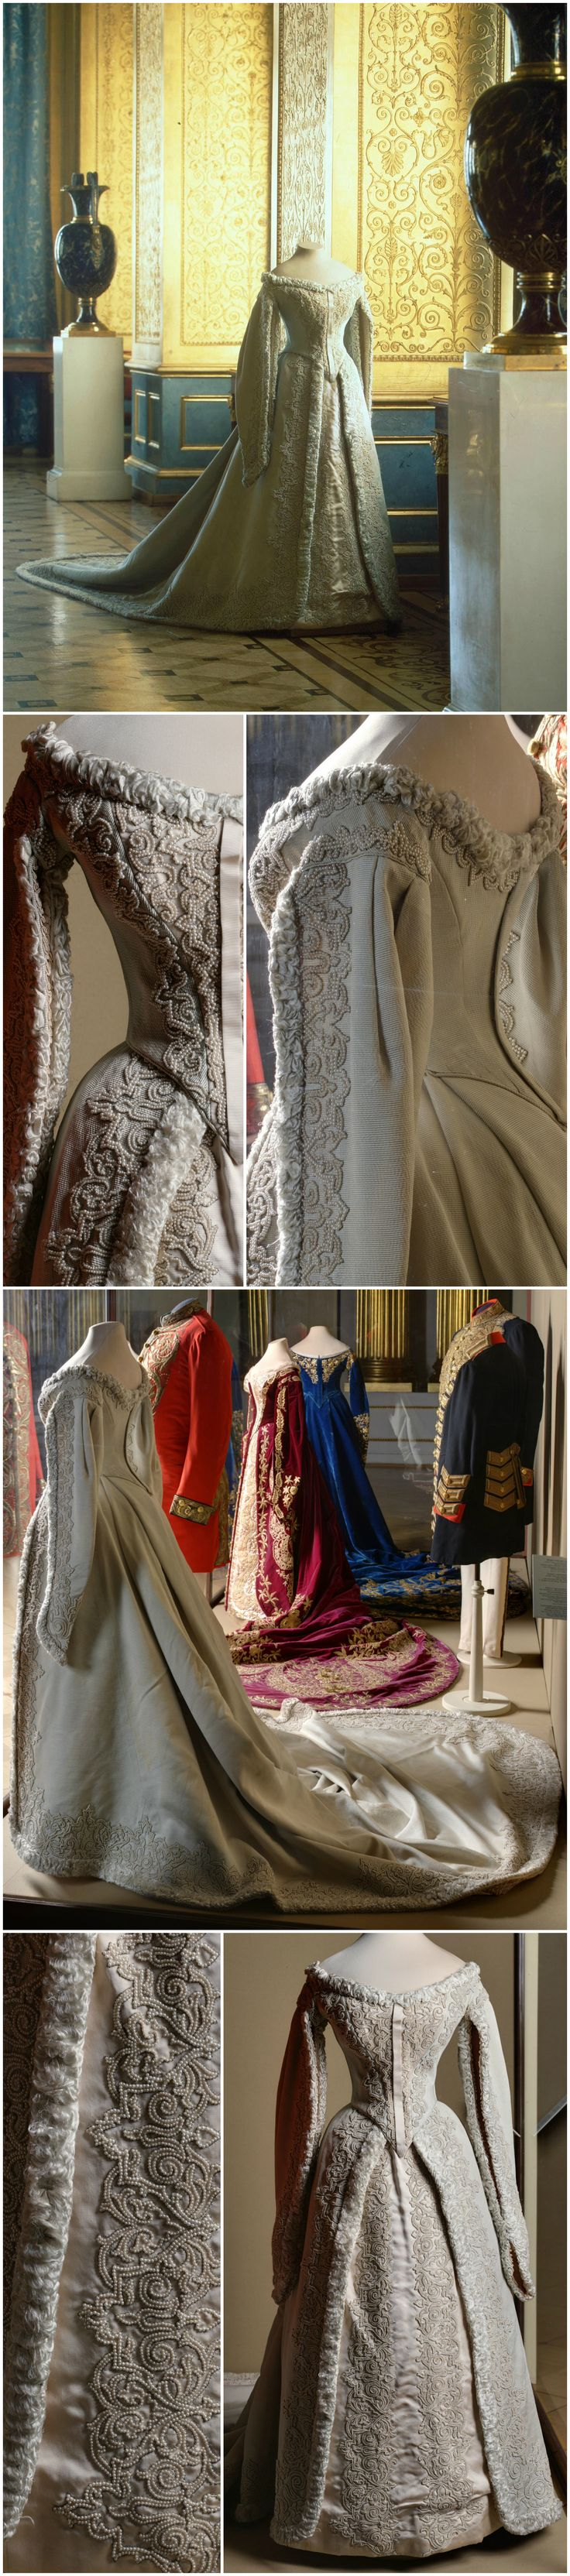 Ceremonial court dress belonging to Empress Alexandra Fyodorovna. Made by the workshop of O. Bulbenkova, St. Petersburg. Silk with rep weave, imitation pearls and fringe. State Hermitage Museum (link: https://www.hermitagemuseum.org/wps/portal/hermitage/digital-collection/08.+Applied+Arts/1263423/?lng=en). Other photos are via Ghosts of Imperial Russia's Tumblr. CLICK FOR VERY LARGE IMAGES.